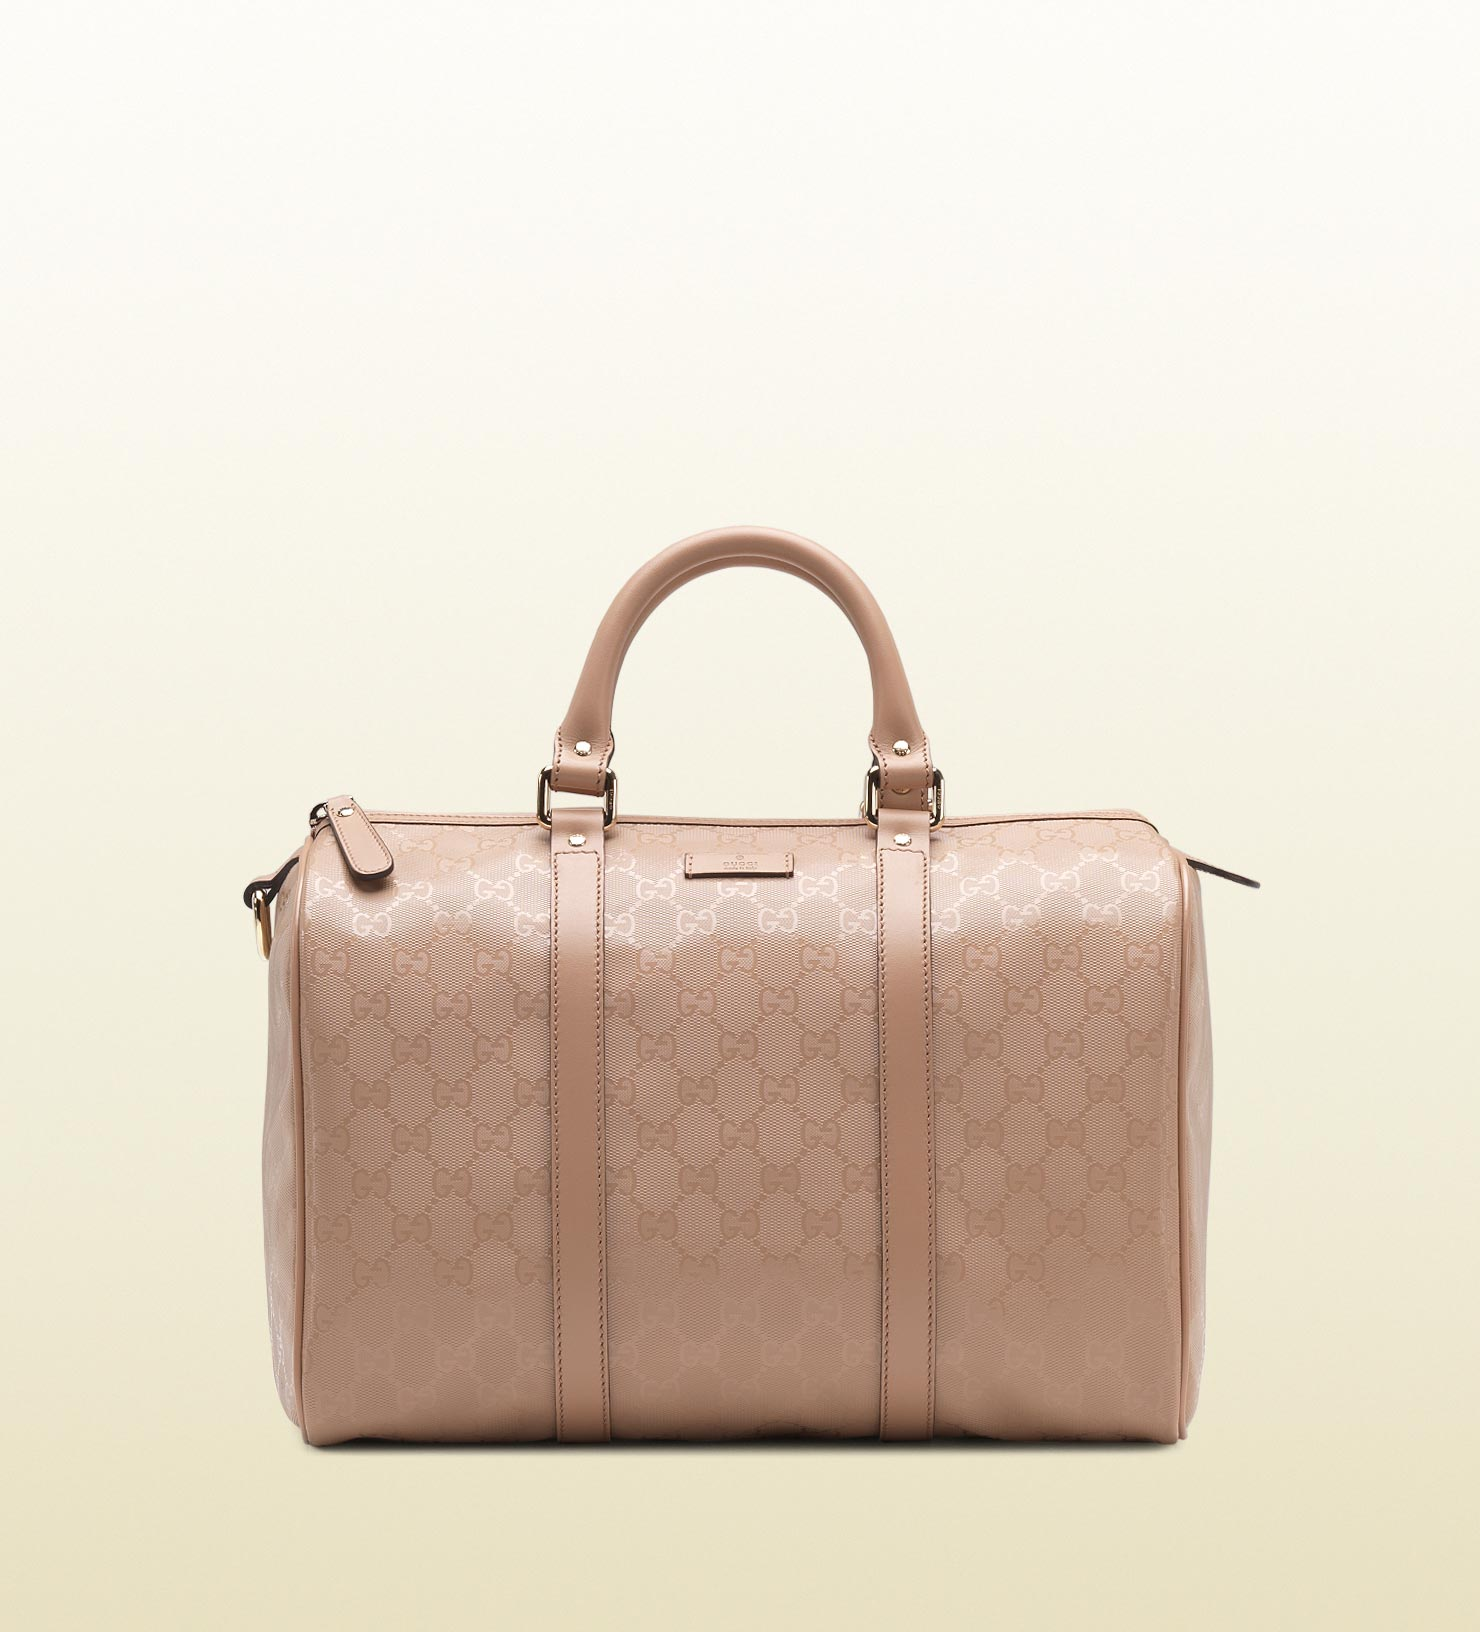 Lyst - Gucci Joy Leather Boston Bag in Pink